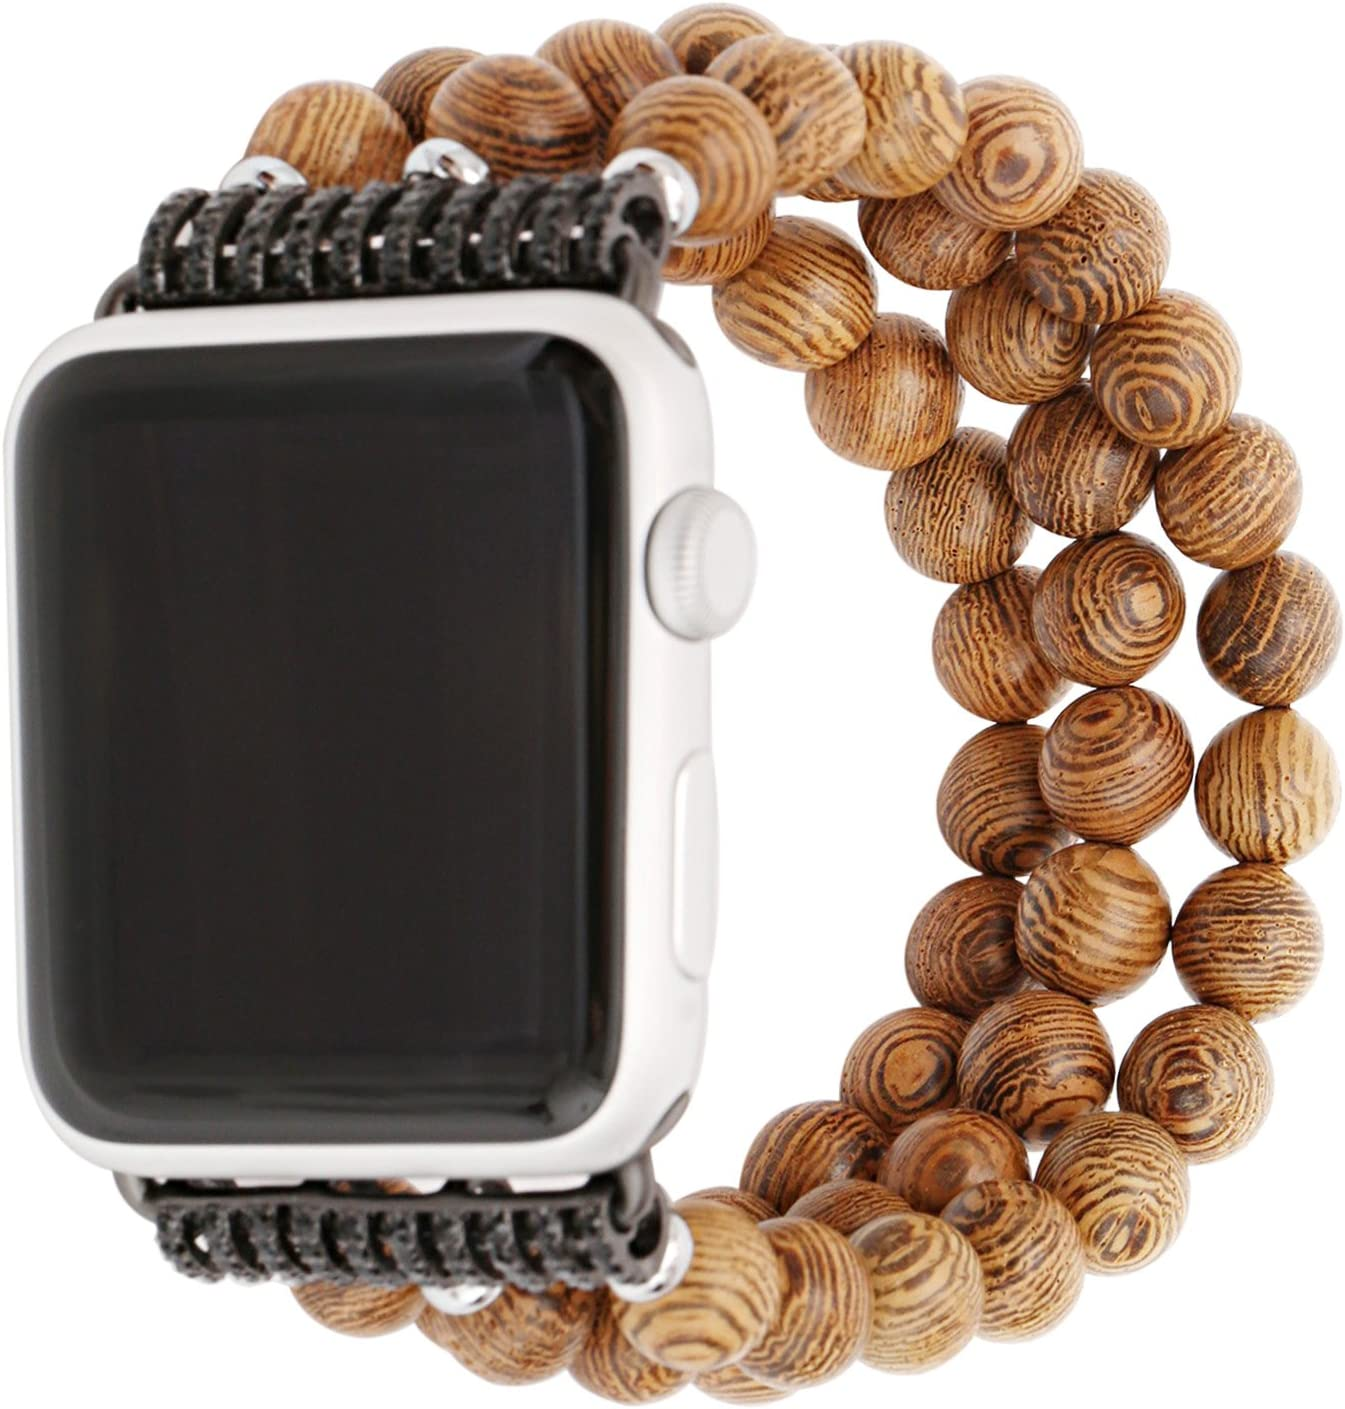 ZXK CO Watch Band for Apple Watch 38mm Handmade Luxury Beaded Jewelry Strap Elastic Stretch Replacement Bracelet Band for Apple iWatch 40mm and 38mm (Wooden)